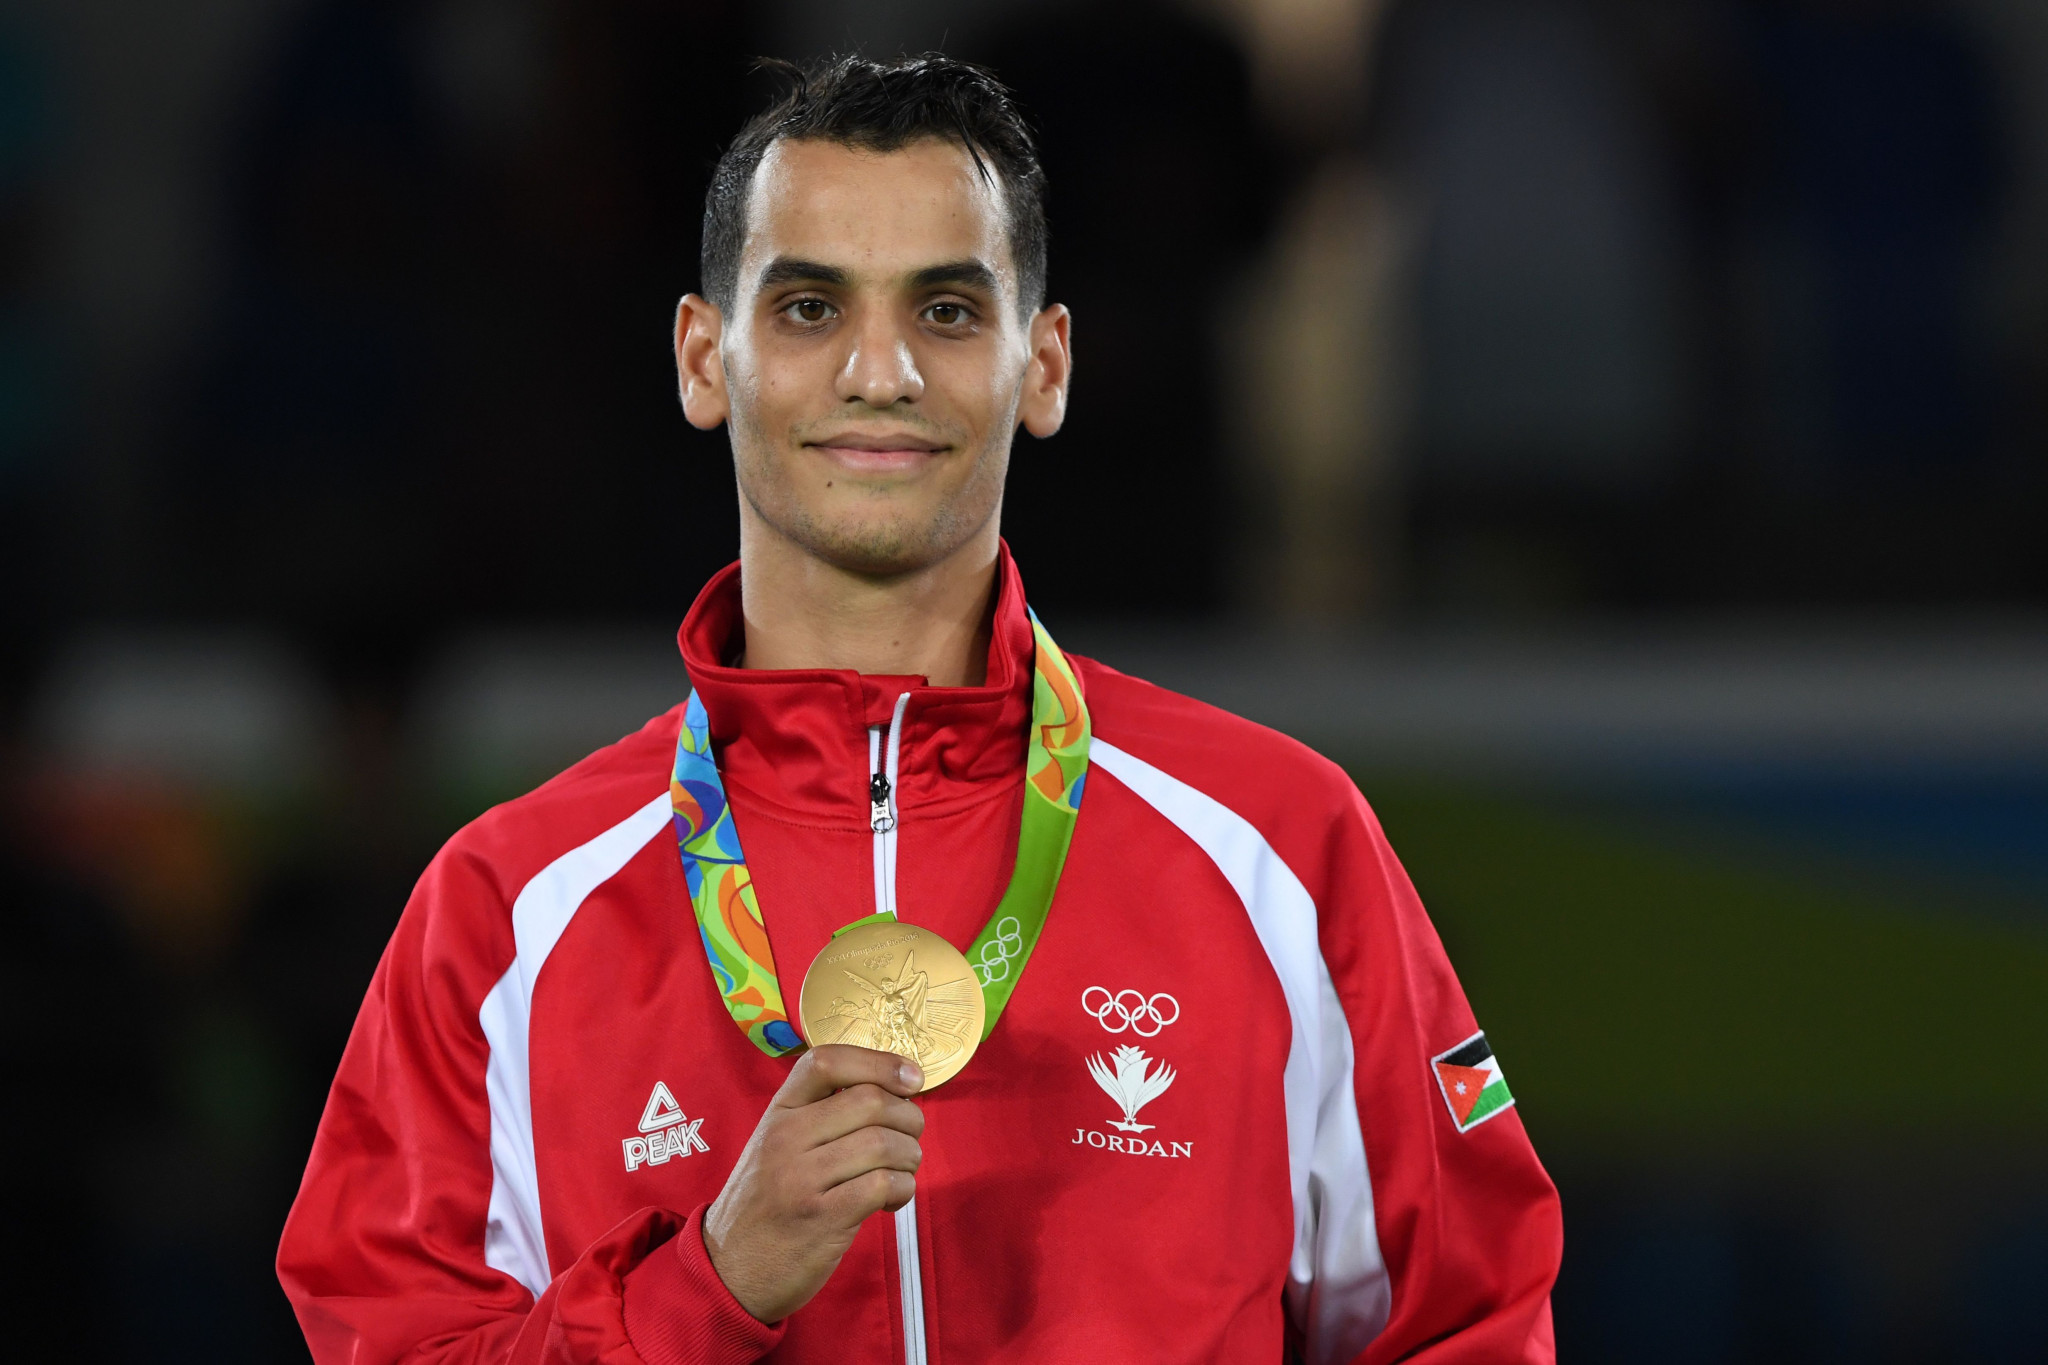 Ahmad Abughaush won Jordan's first-ever Olympic medal at Rio 2016 ©Getty Images